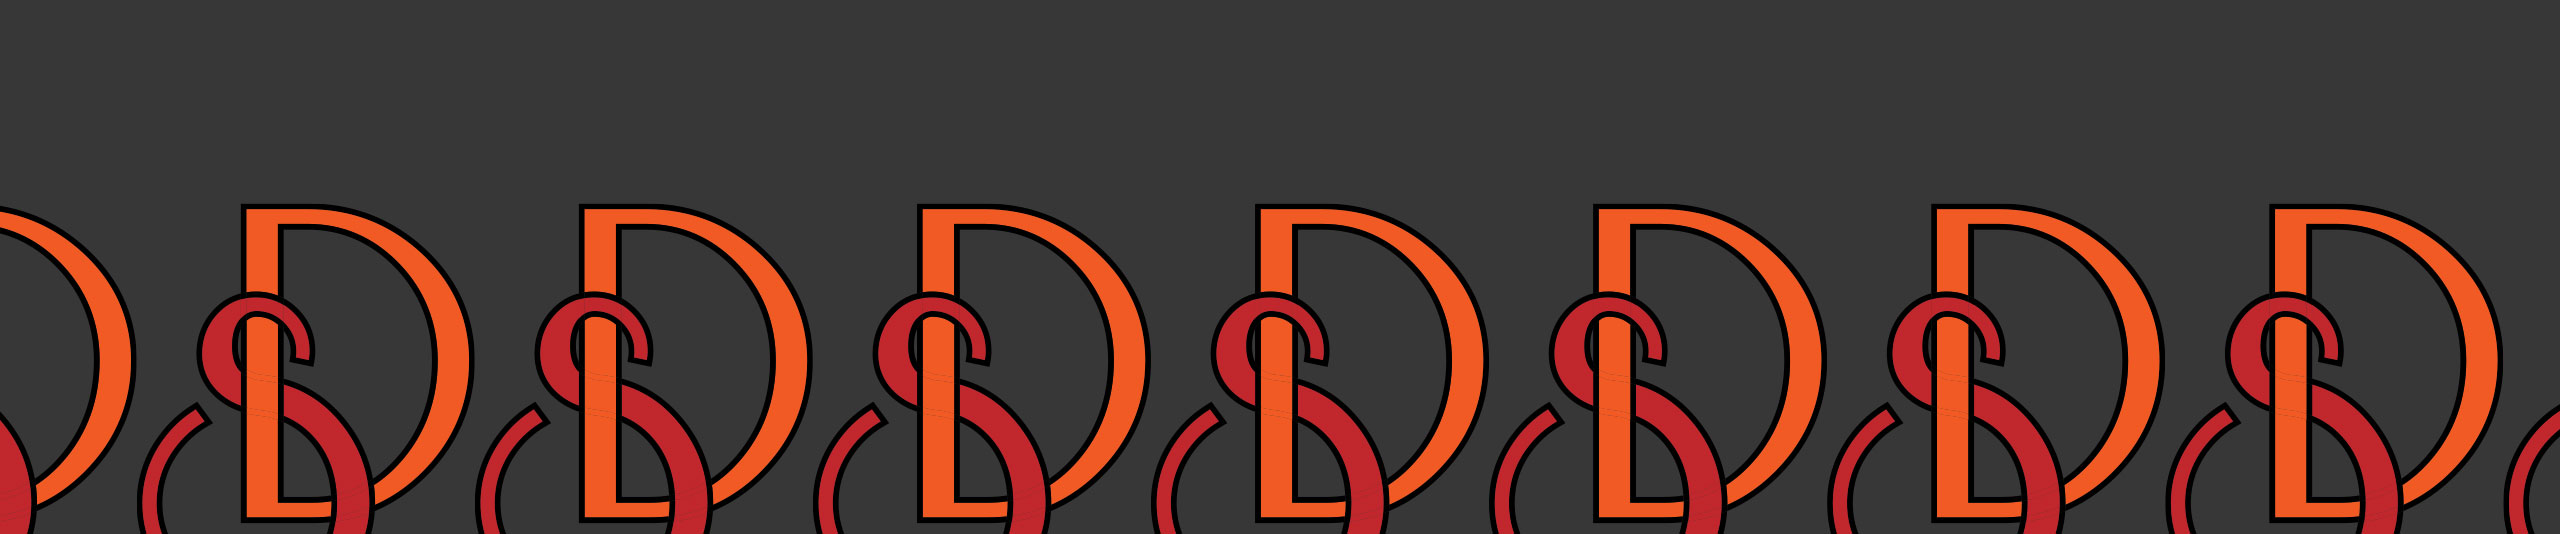 How to Interlock Monogram Letters with the Live Paint Bucket Tool in Adobe Illustrator CC